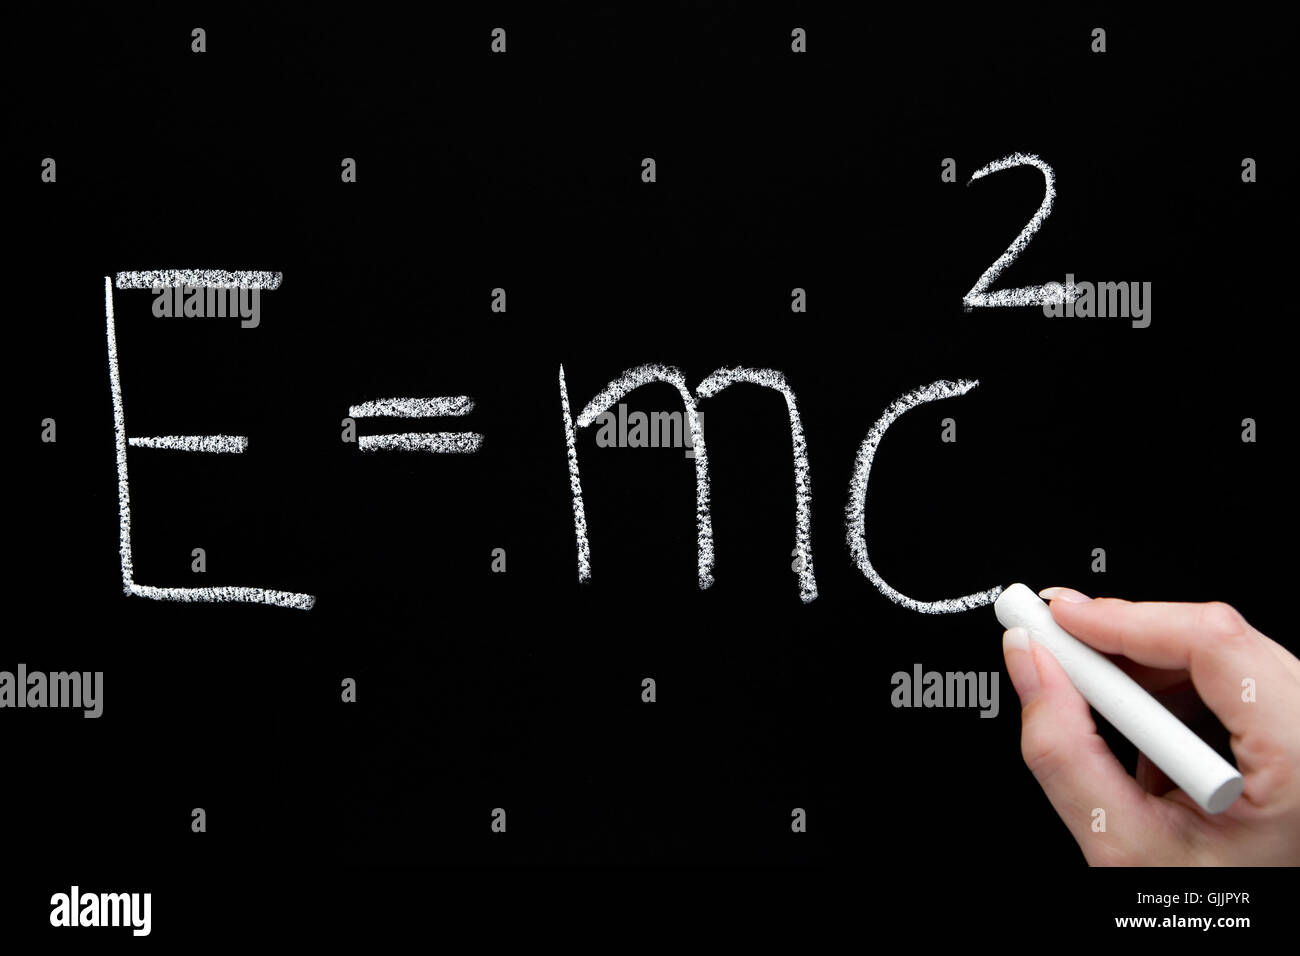 theory of relativity - Stock Image